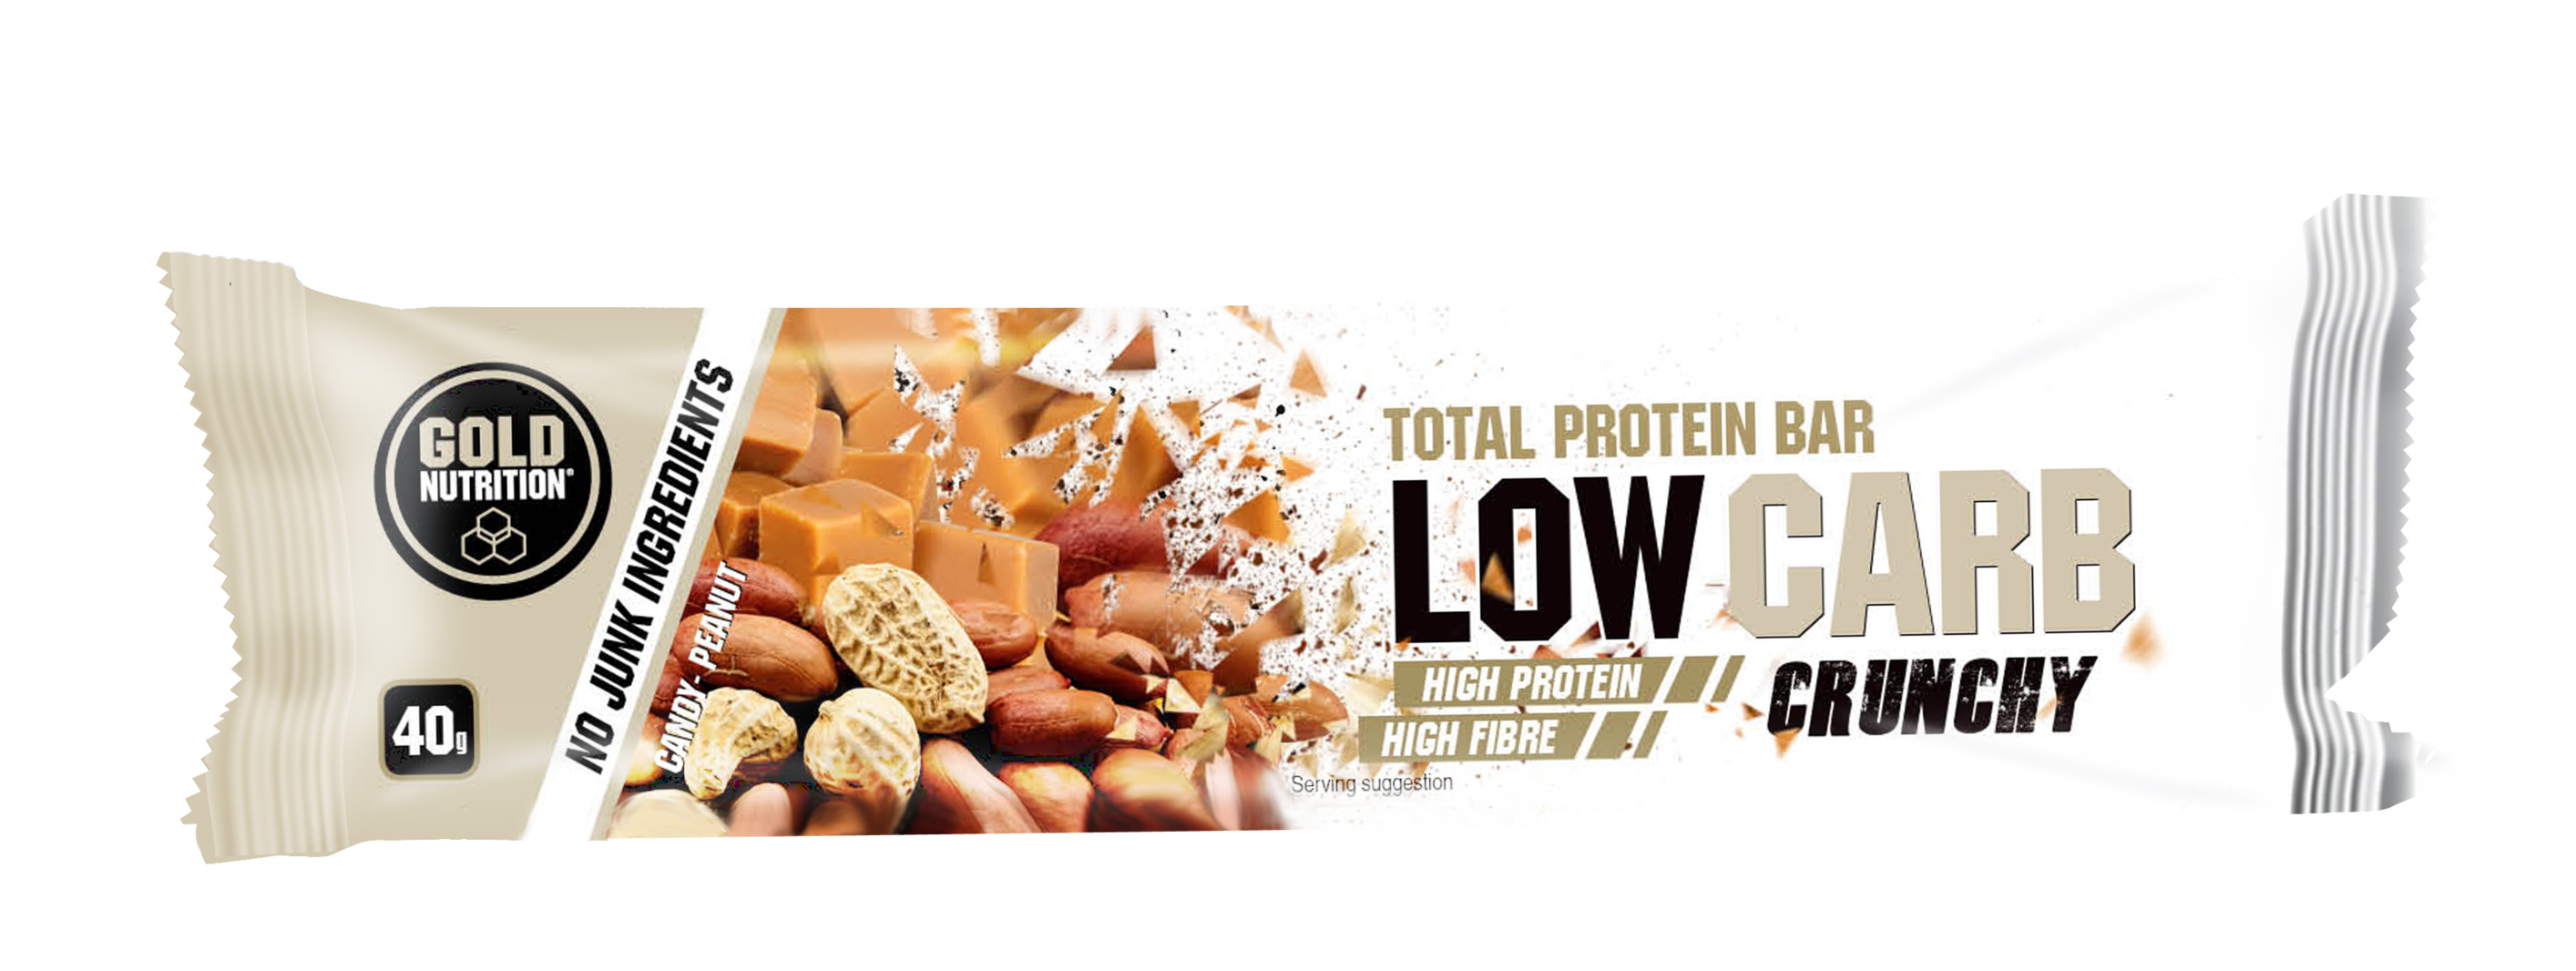 GOLDNUTRITION PROTEIN BAR LOW CARB CRUNCHY CARAMEL SI ALUNE